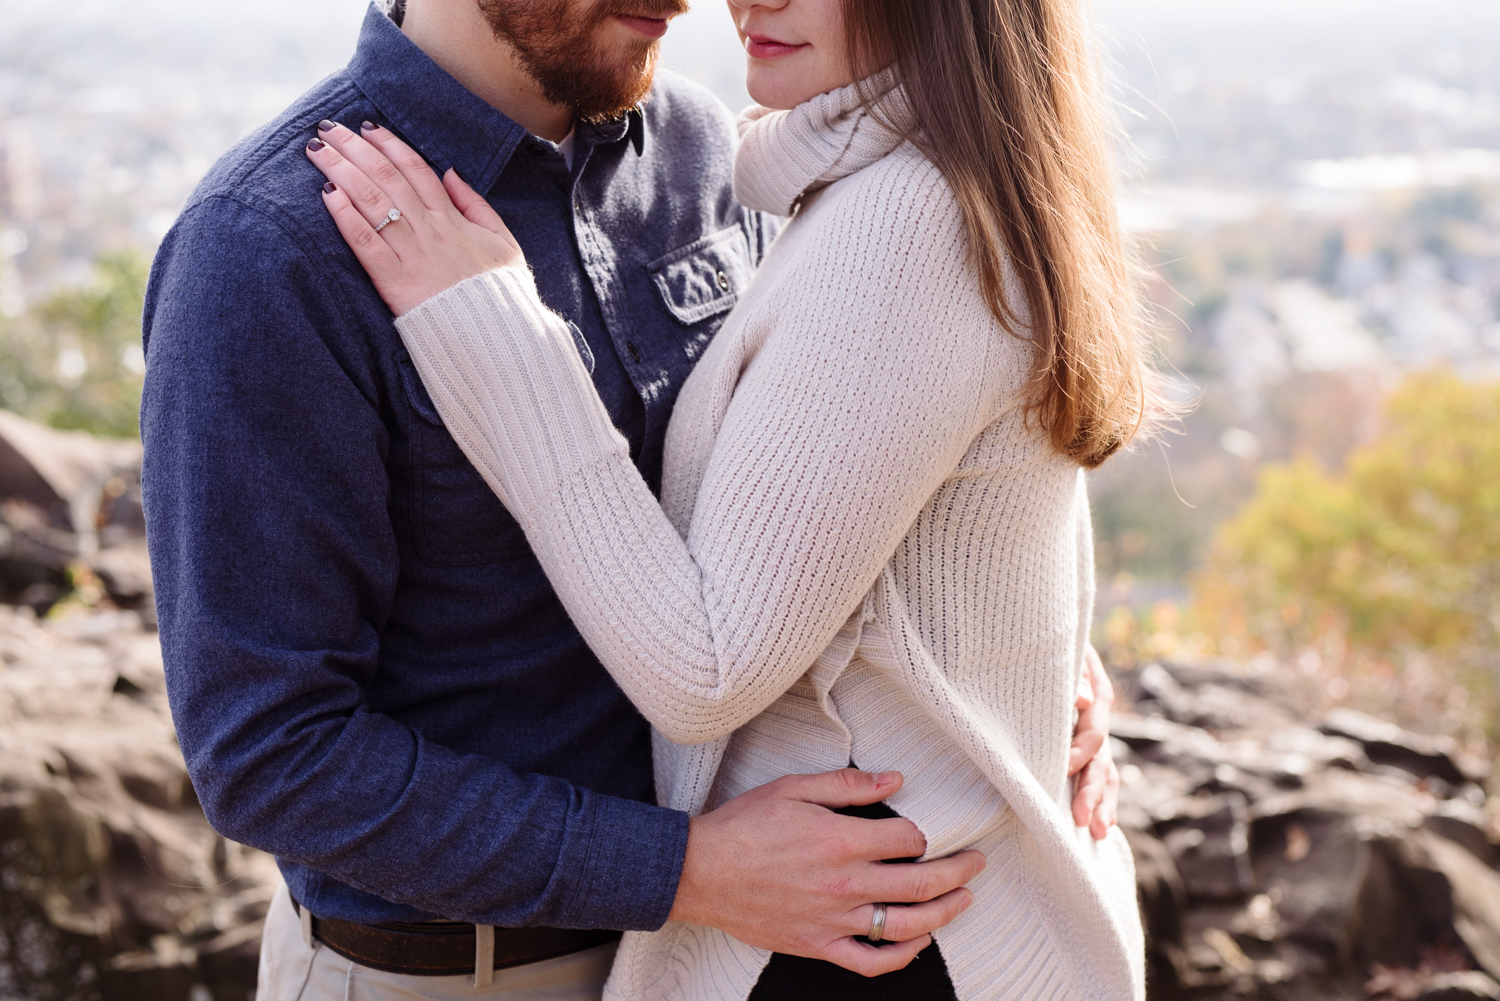 Amy+Brian- Garret Mountain Engagement Session- Fall Nature- Film Photography-New Jersey- Olivia Christina Photo-64.JPG